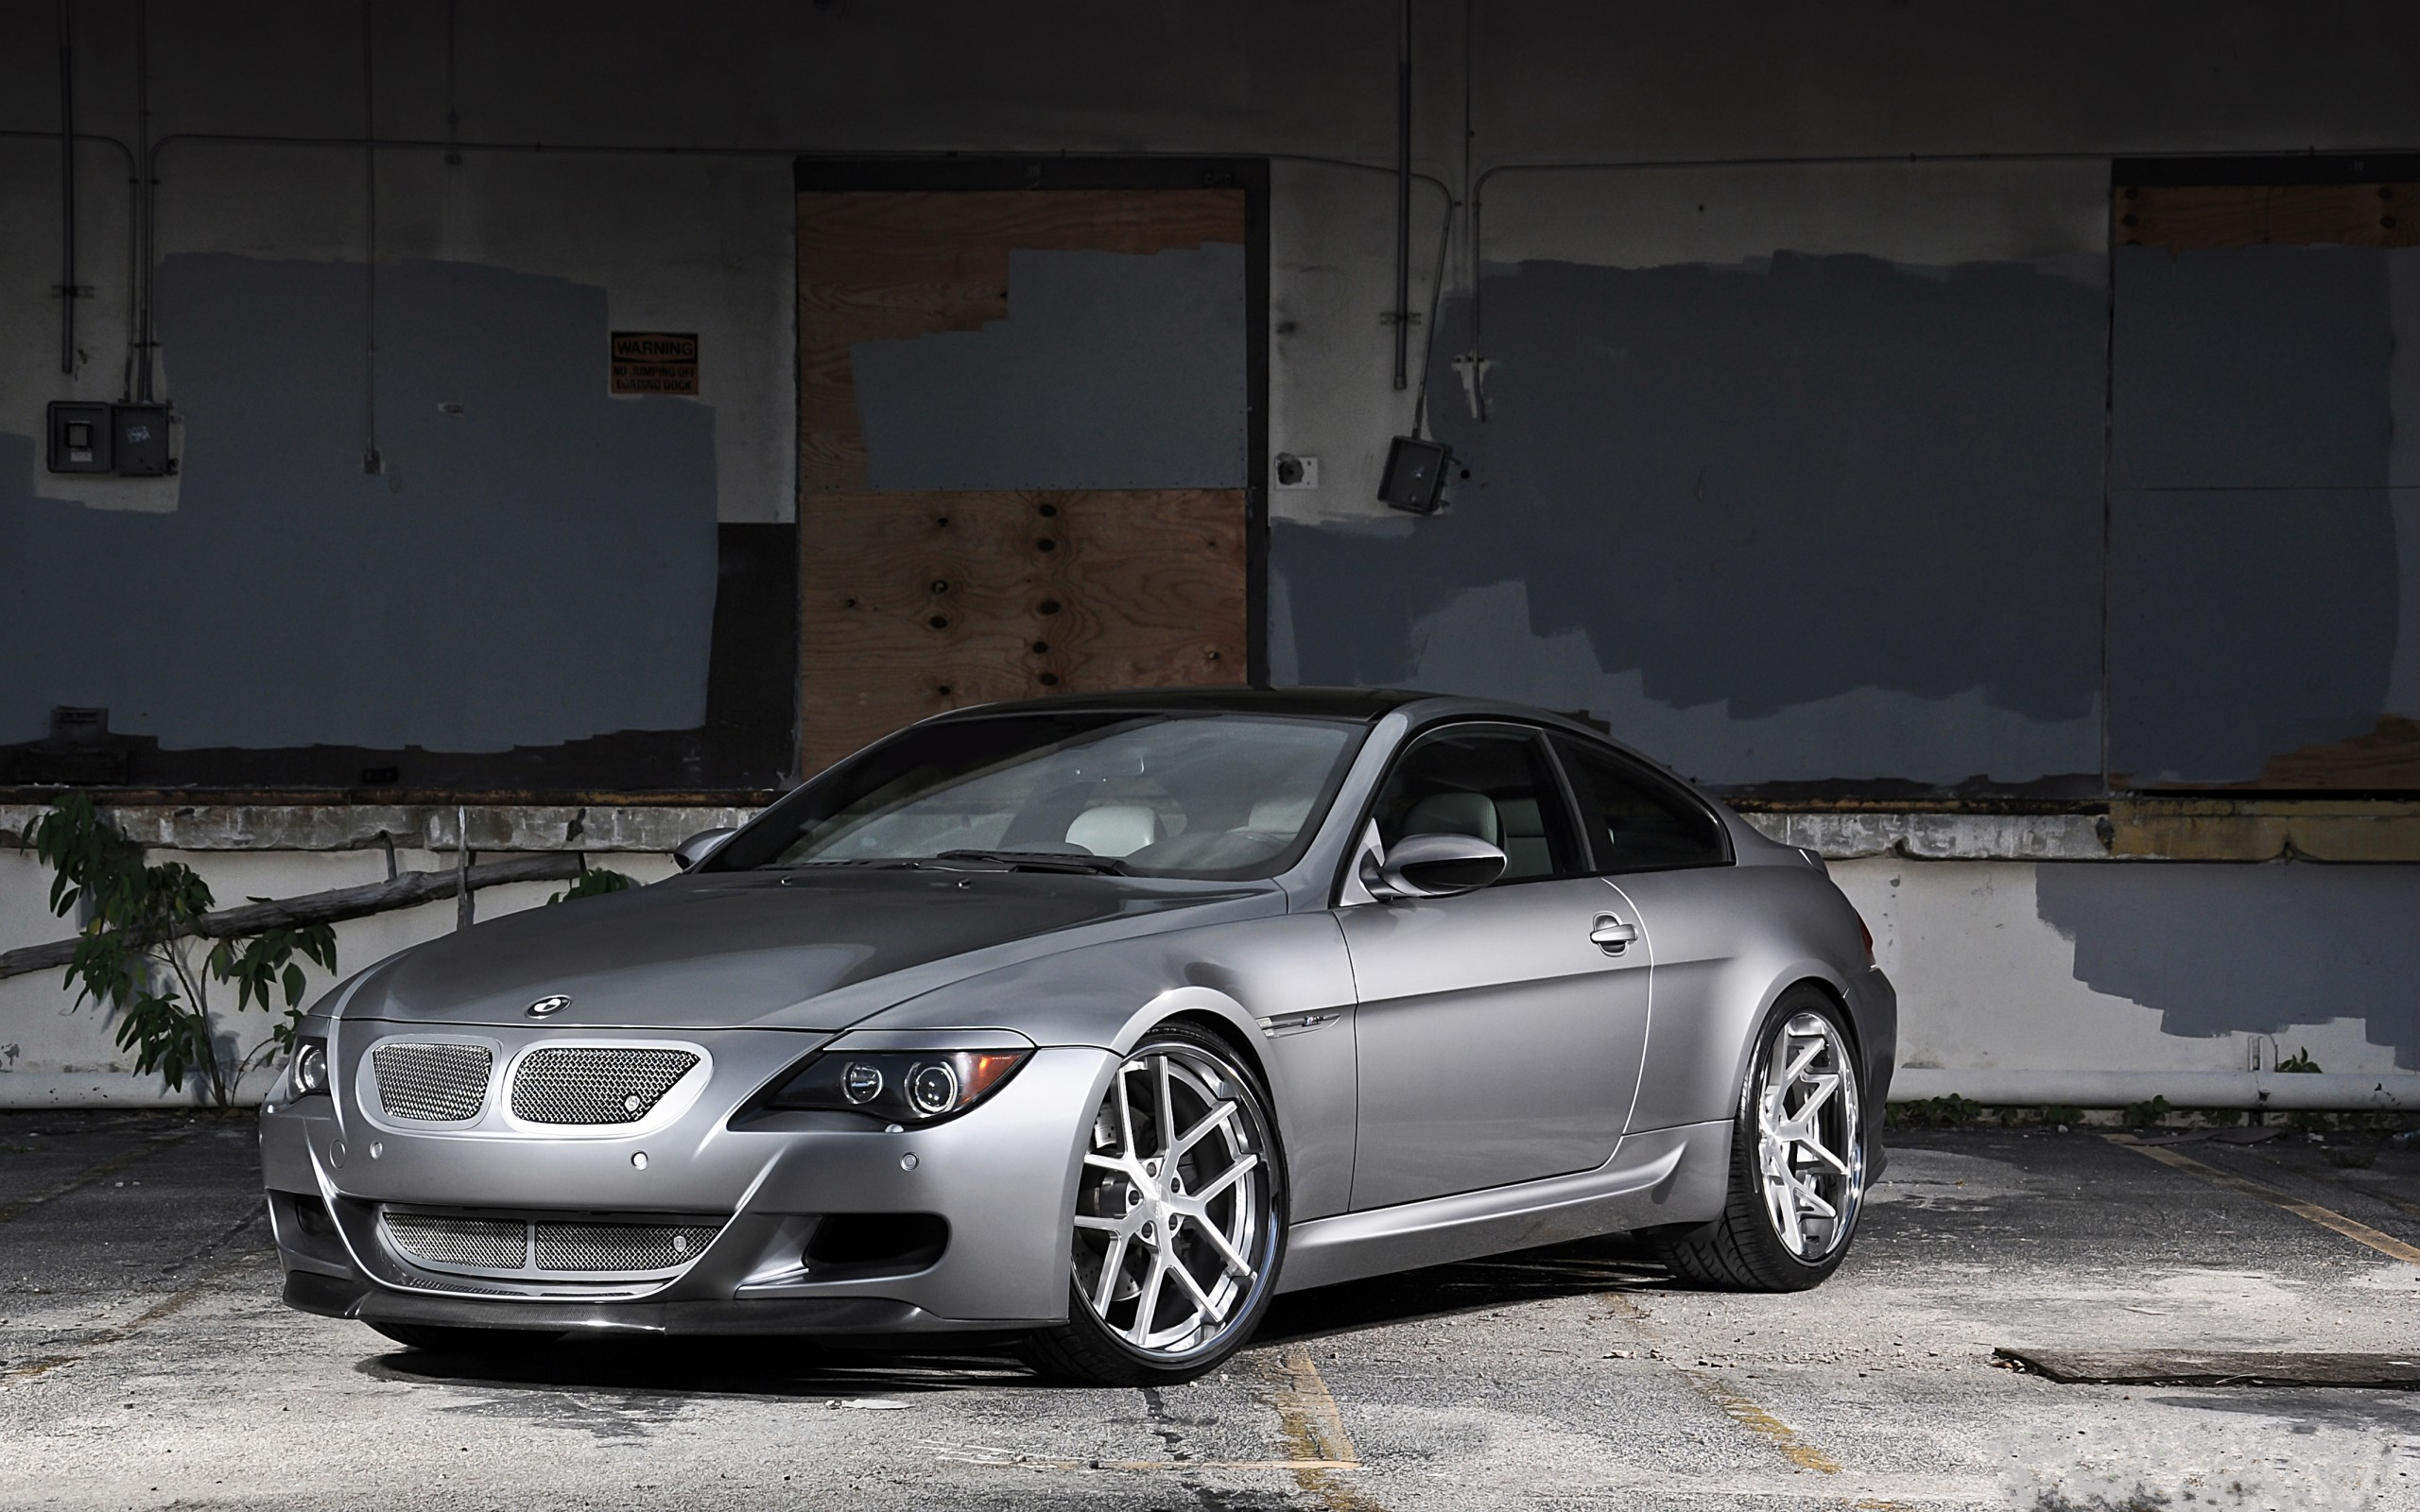 bmw m6 e63 silver wheels wall bmw silver wall wheels. Black Bedroom Furniture Sets. Home Design Ideas